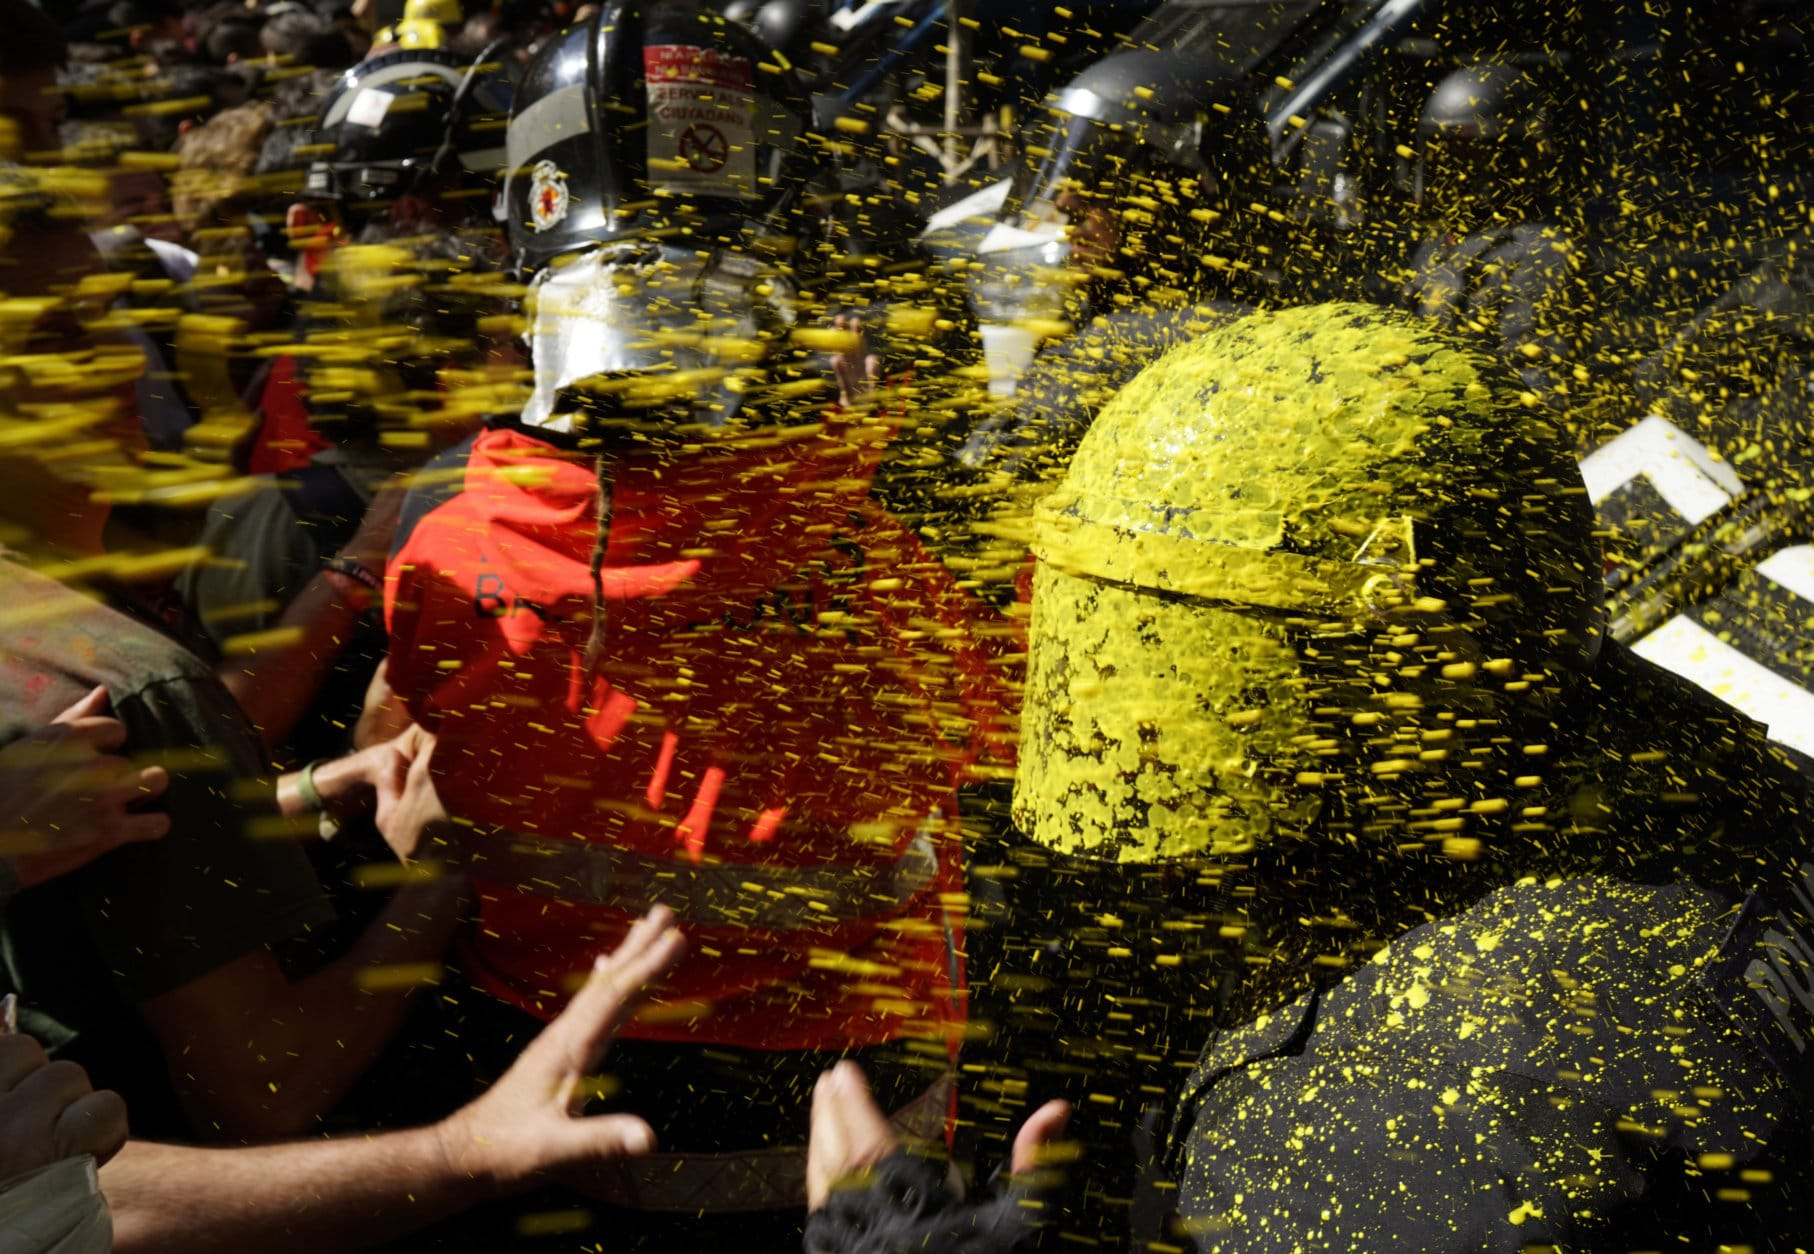 Pro independence demonstrators throw paint at Catalan police officers during clashes in Barcelona, Spain, on Sept. 29, 2018, as tensions increase before the anniversary of the Spanish region's illegal referendum on secession that ended in violent raids by security forces. (AP Photo/Daniel Cole)